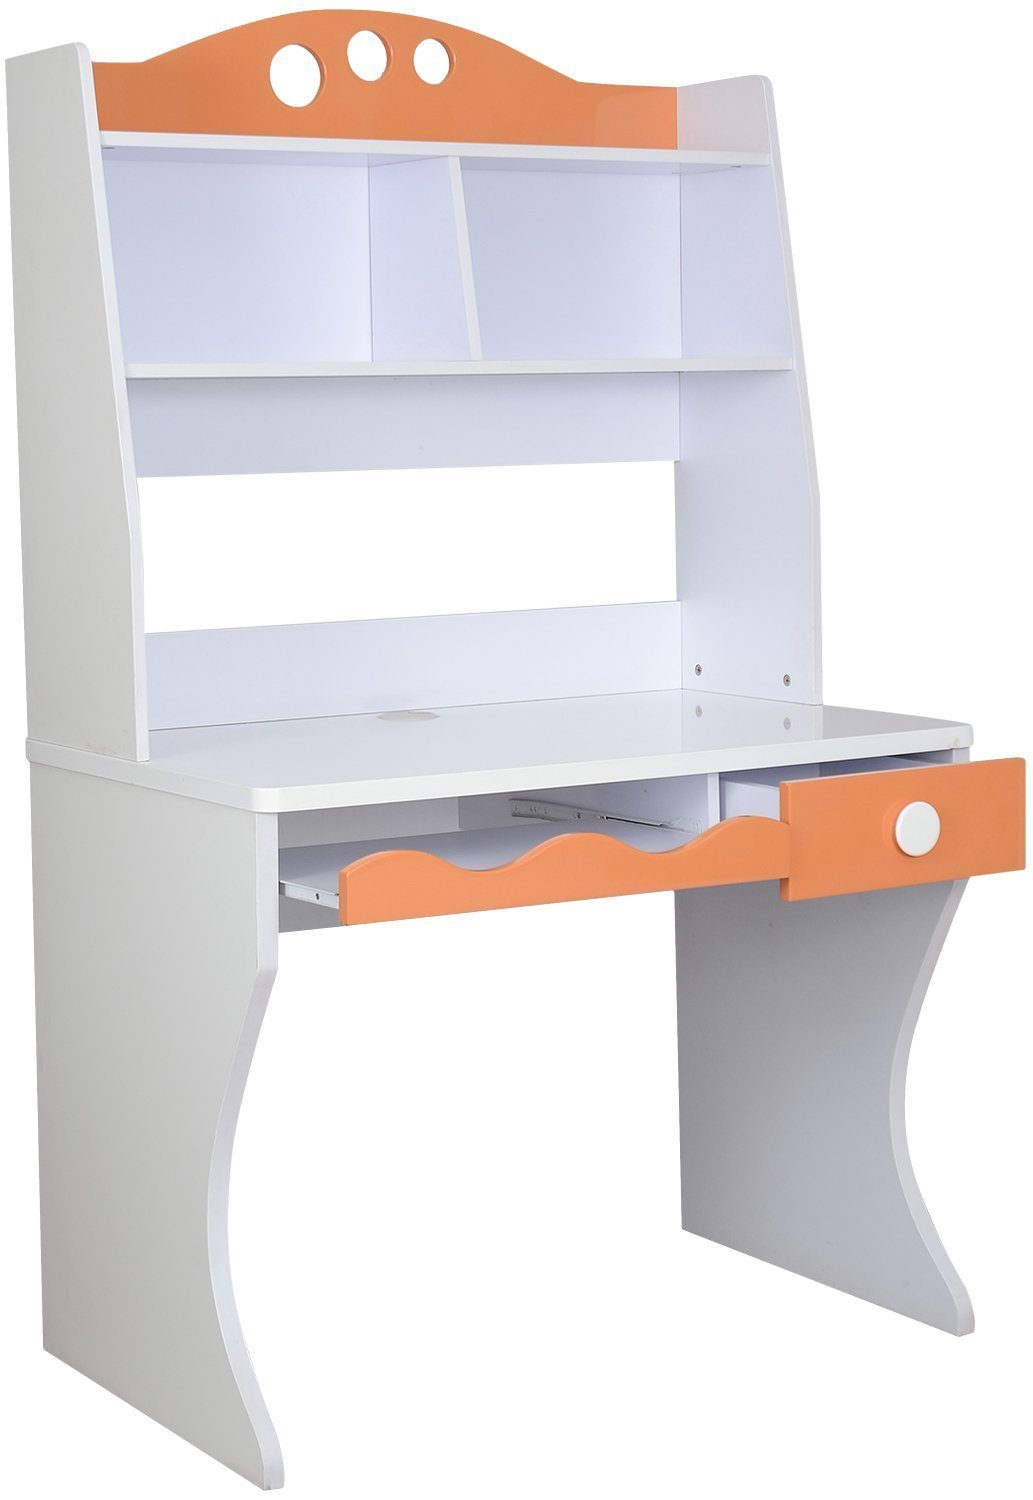 Kidkraft Table And Chairs: Kids Bedroom Furniture